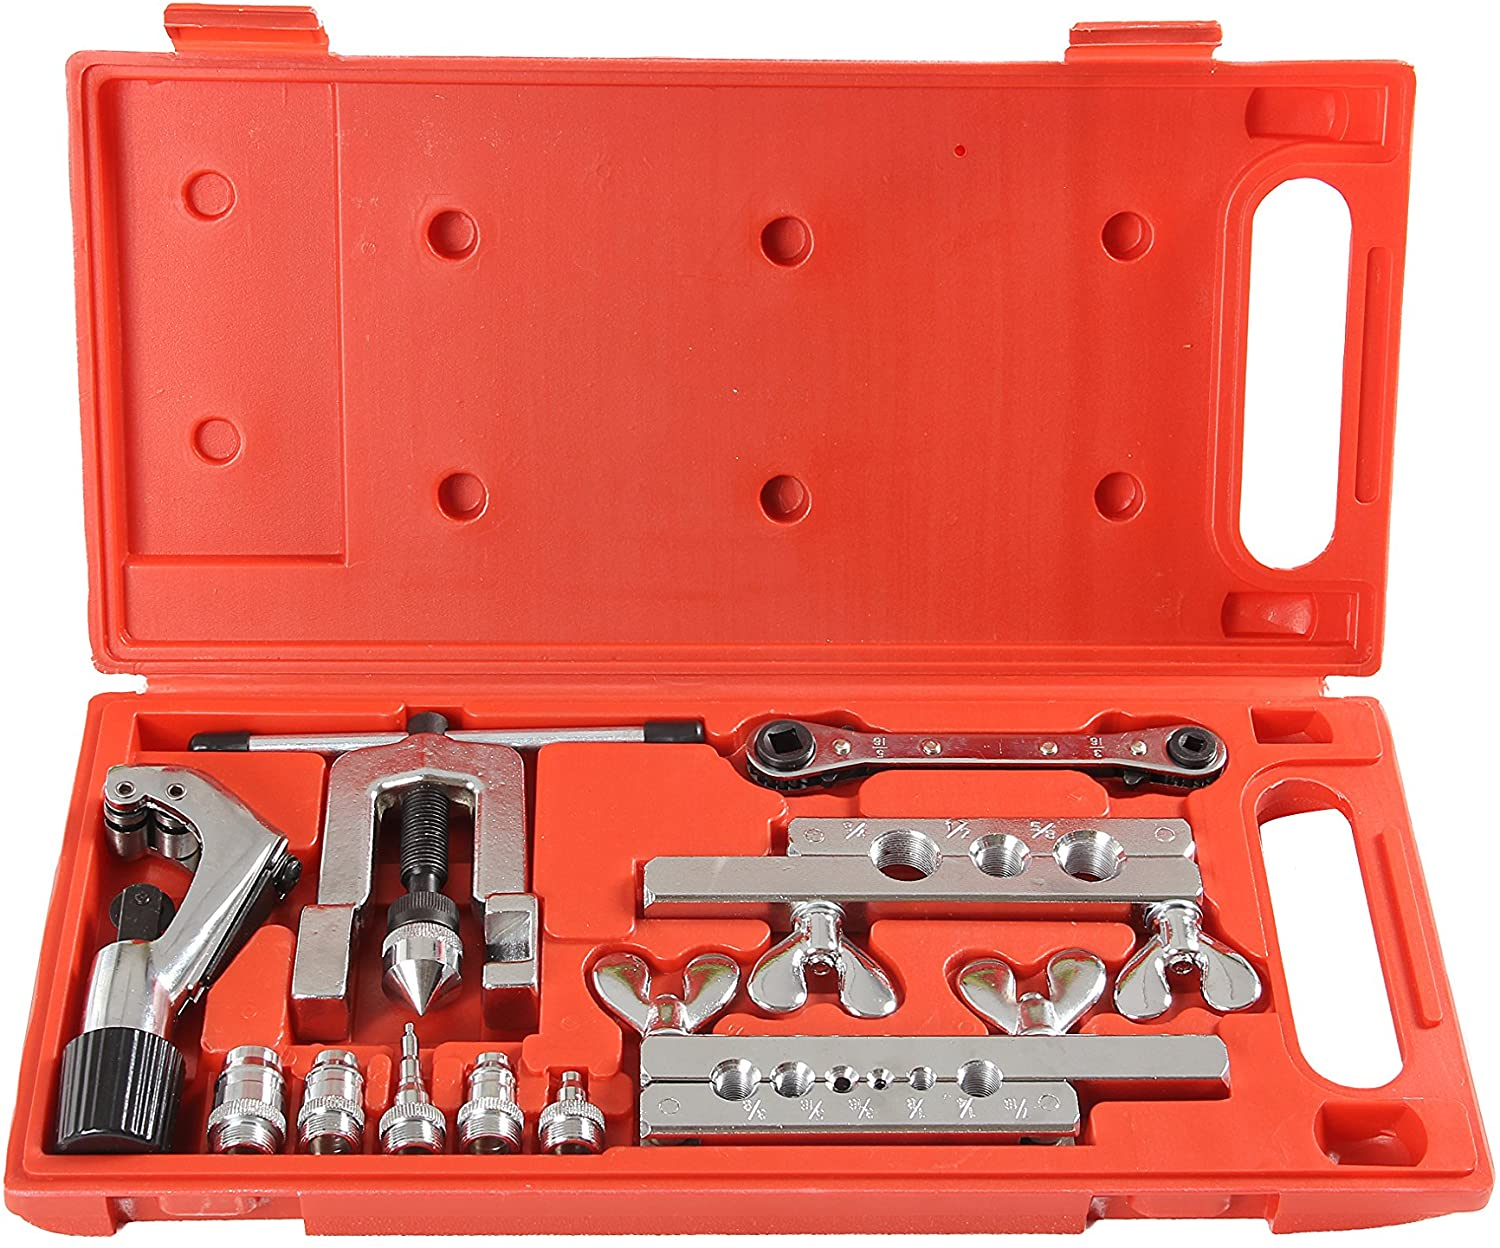 Shankly Flaring Tool Set (10 Piece) Professional's grade Flaring Tool